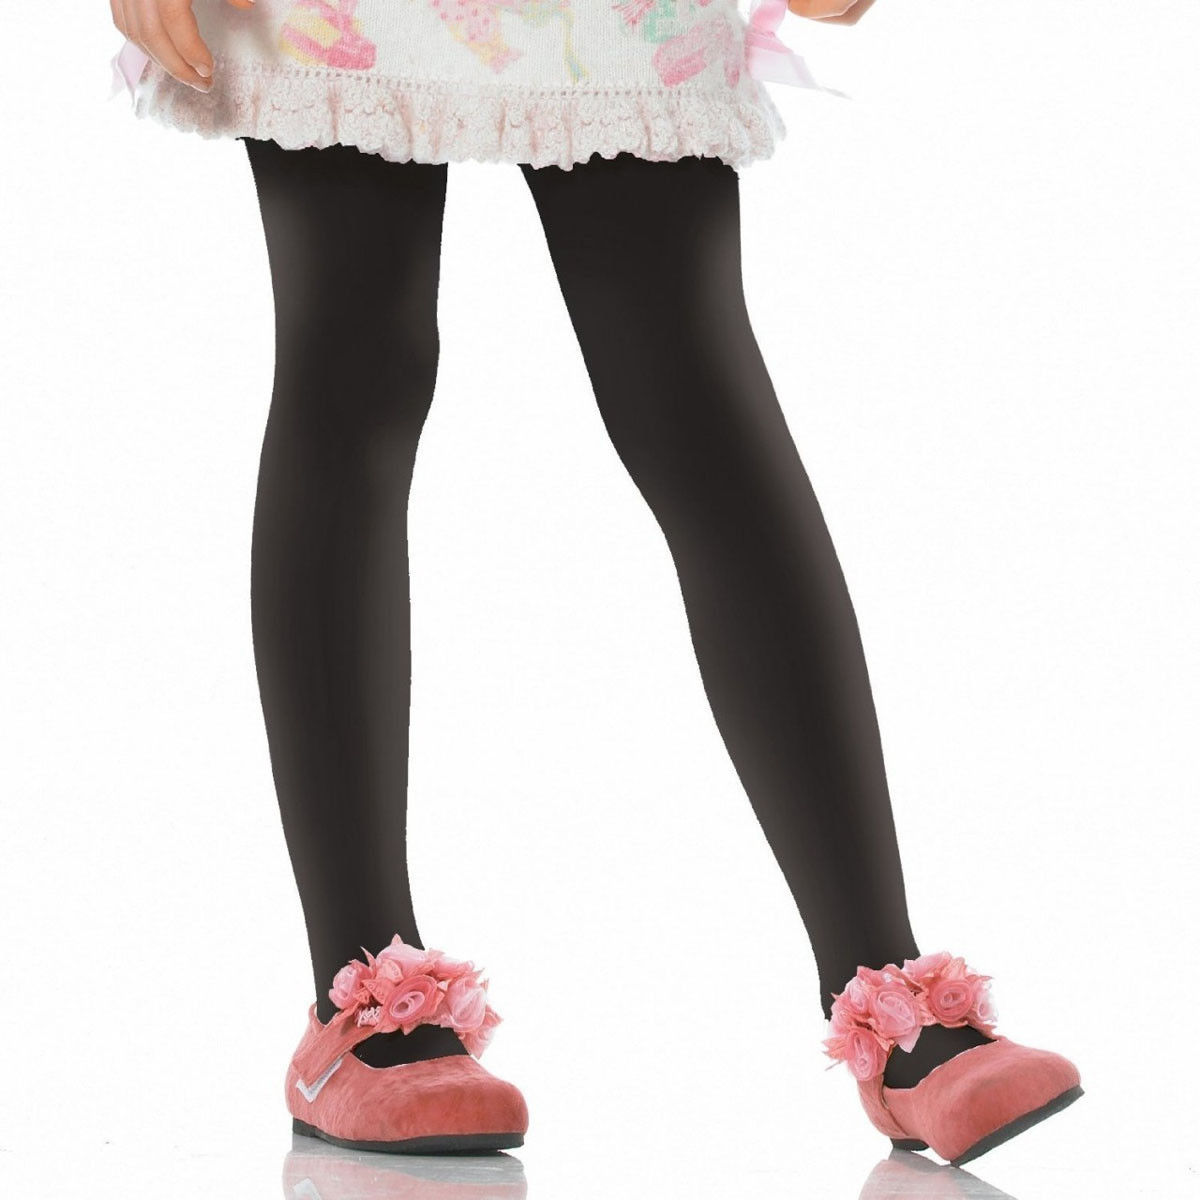 779ab9bef8d Black Opaque Child Tights Leg Avenue Enchanted Costumes. IPC4646. Children s  opaque tights